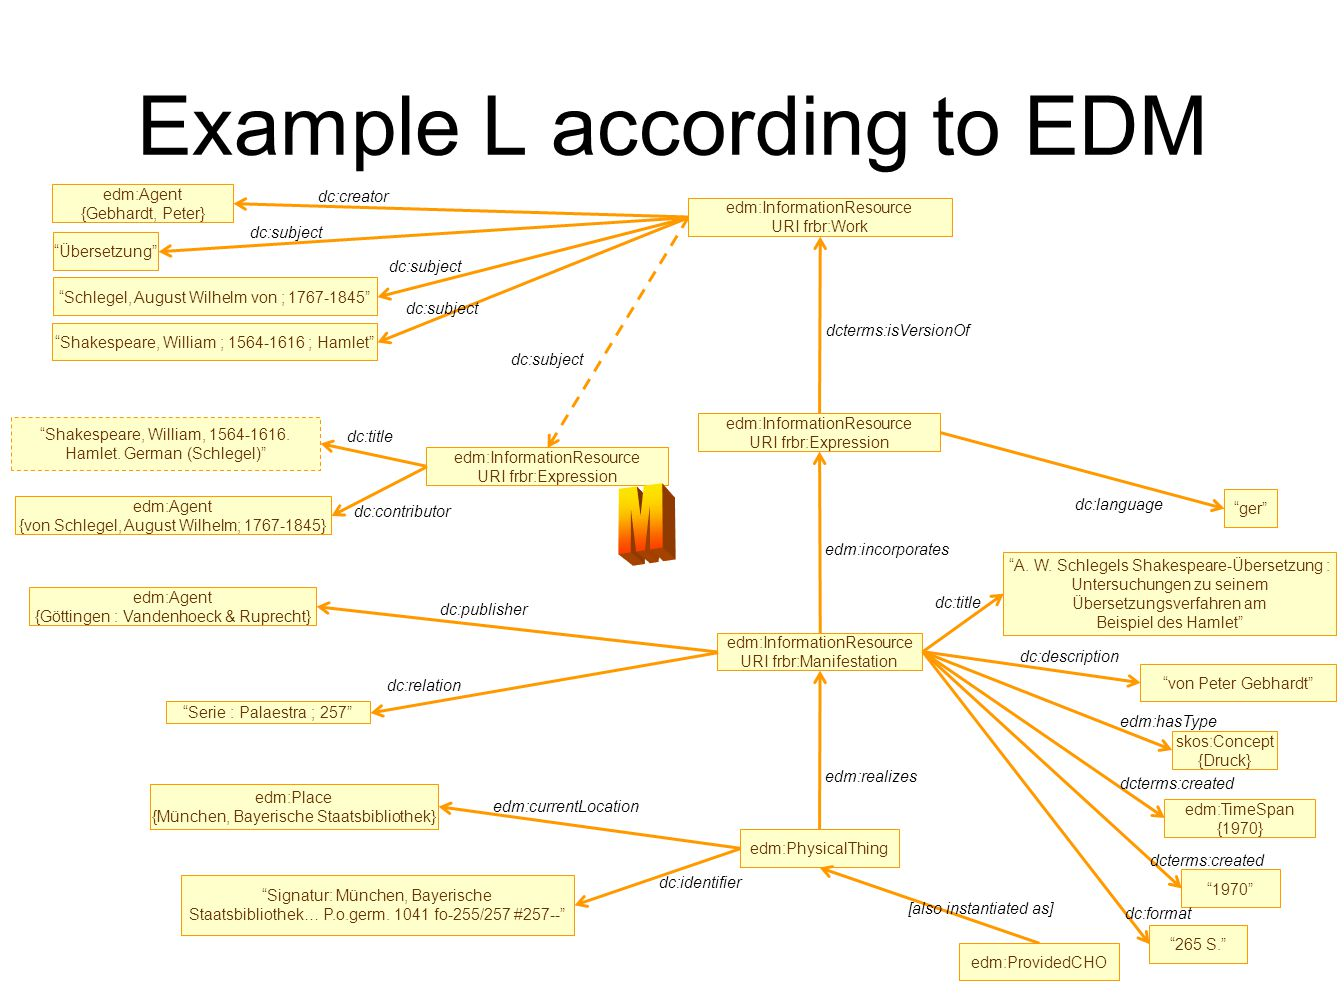 Example L according to EDM edm:InformationResource URI frbr:Expression ger dc:language edm:Agent {Gebhardt, Peter} dc:creator edm:InformationResource URI frbr:Manifestation edm:PhysicalThing edm:incorporates edm:realizes edm:Agent {Göttingen : Vandenhoeck & Ruprecht} dc:publisher edm:TimeSpan {1970} 1970 Signatur: München, Bayerische Staatsbibliothek… P.o.germ.